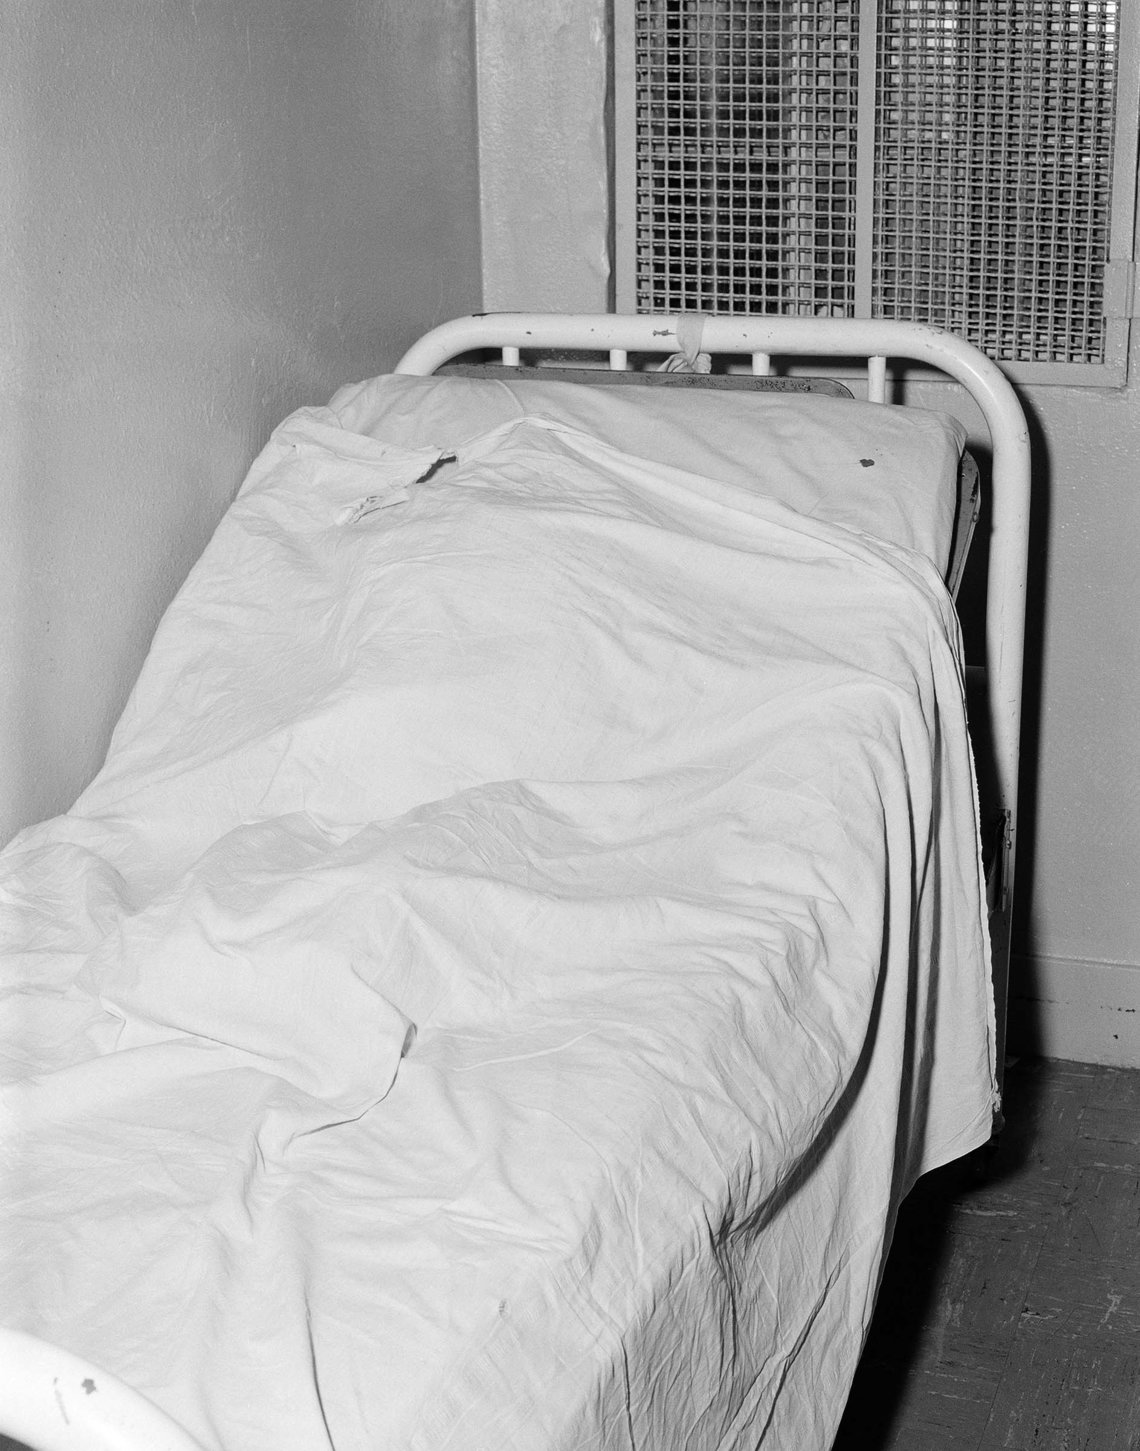 Venerable Suicide Hospital Room 89, 1965